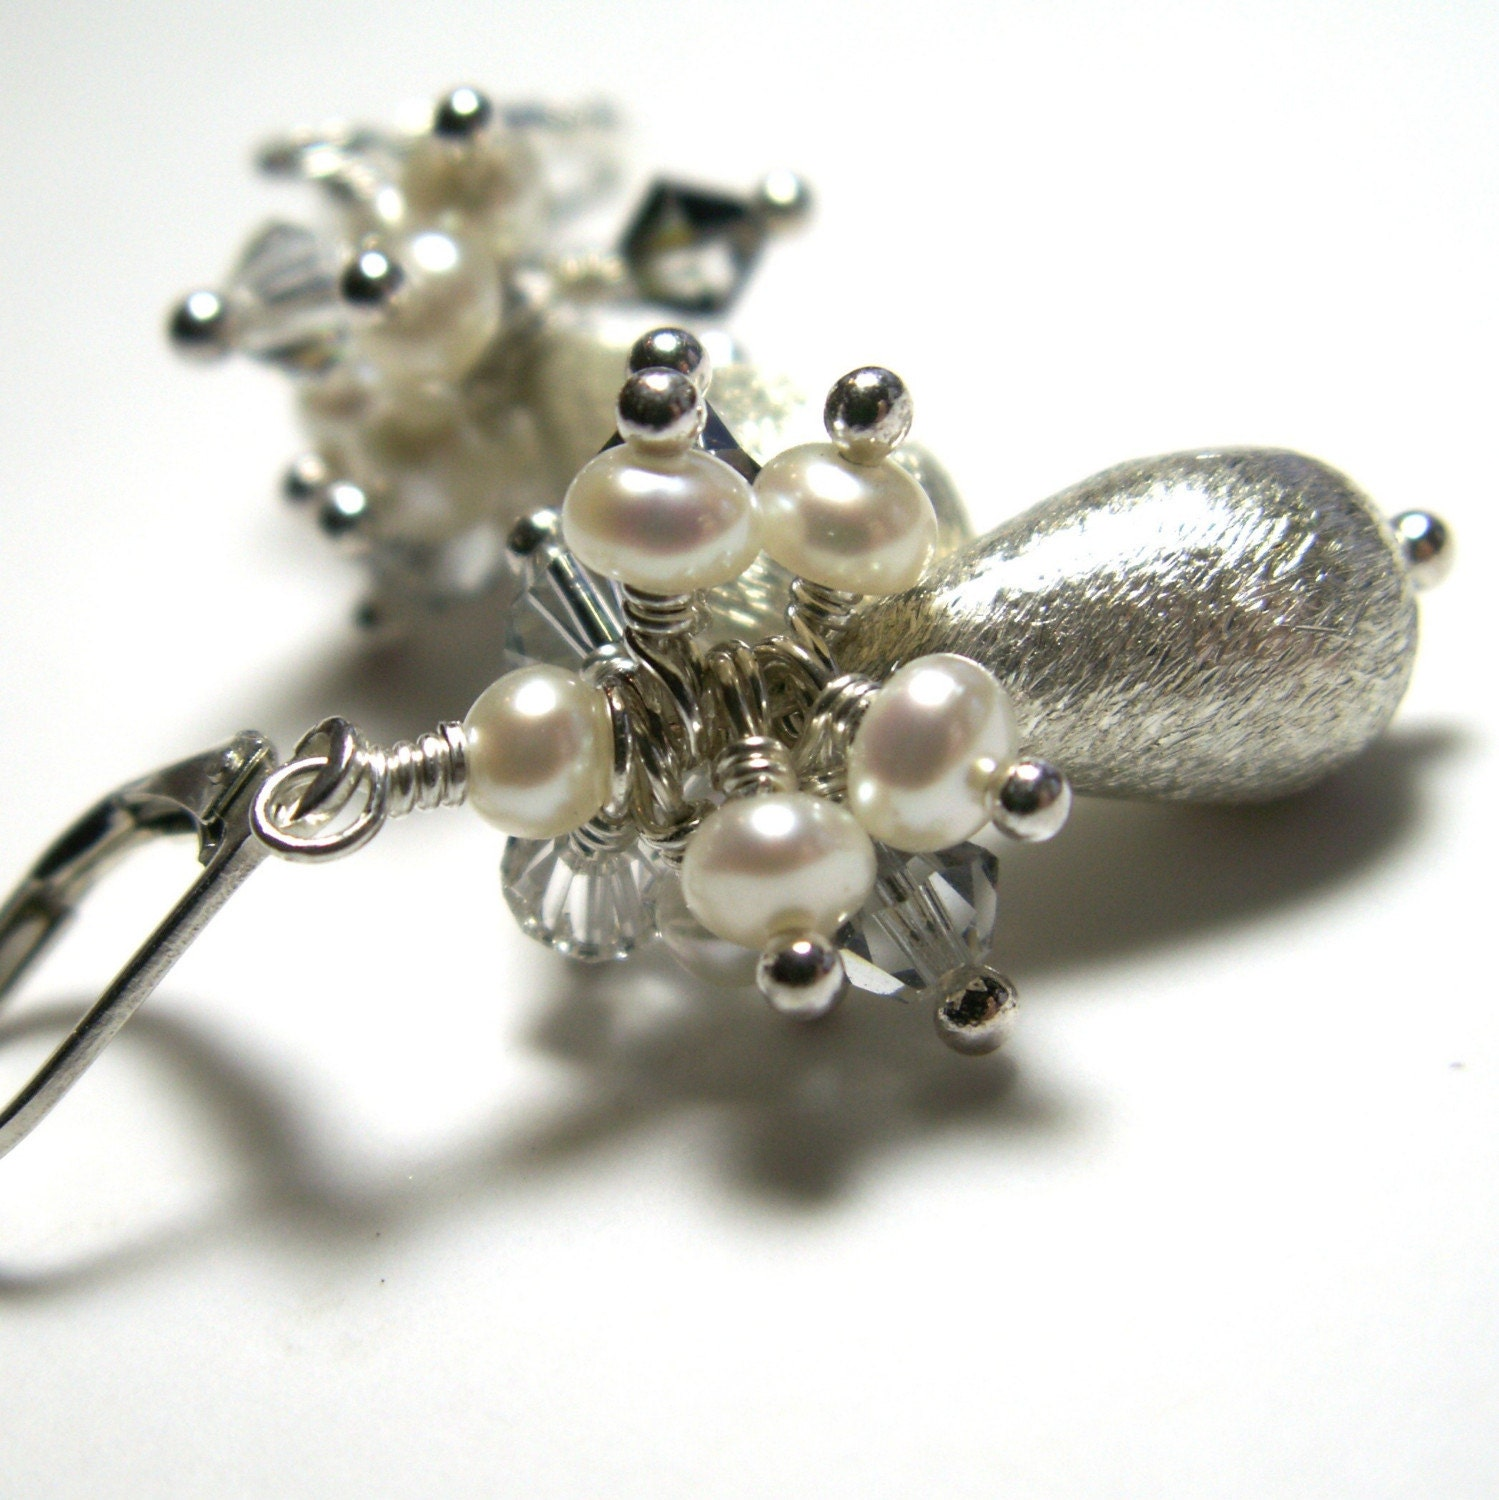 handcrafted jewelry earrings sterling silver brushed white pearls swarovski crystals